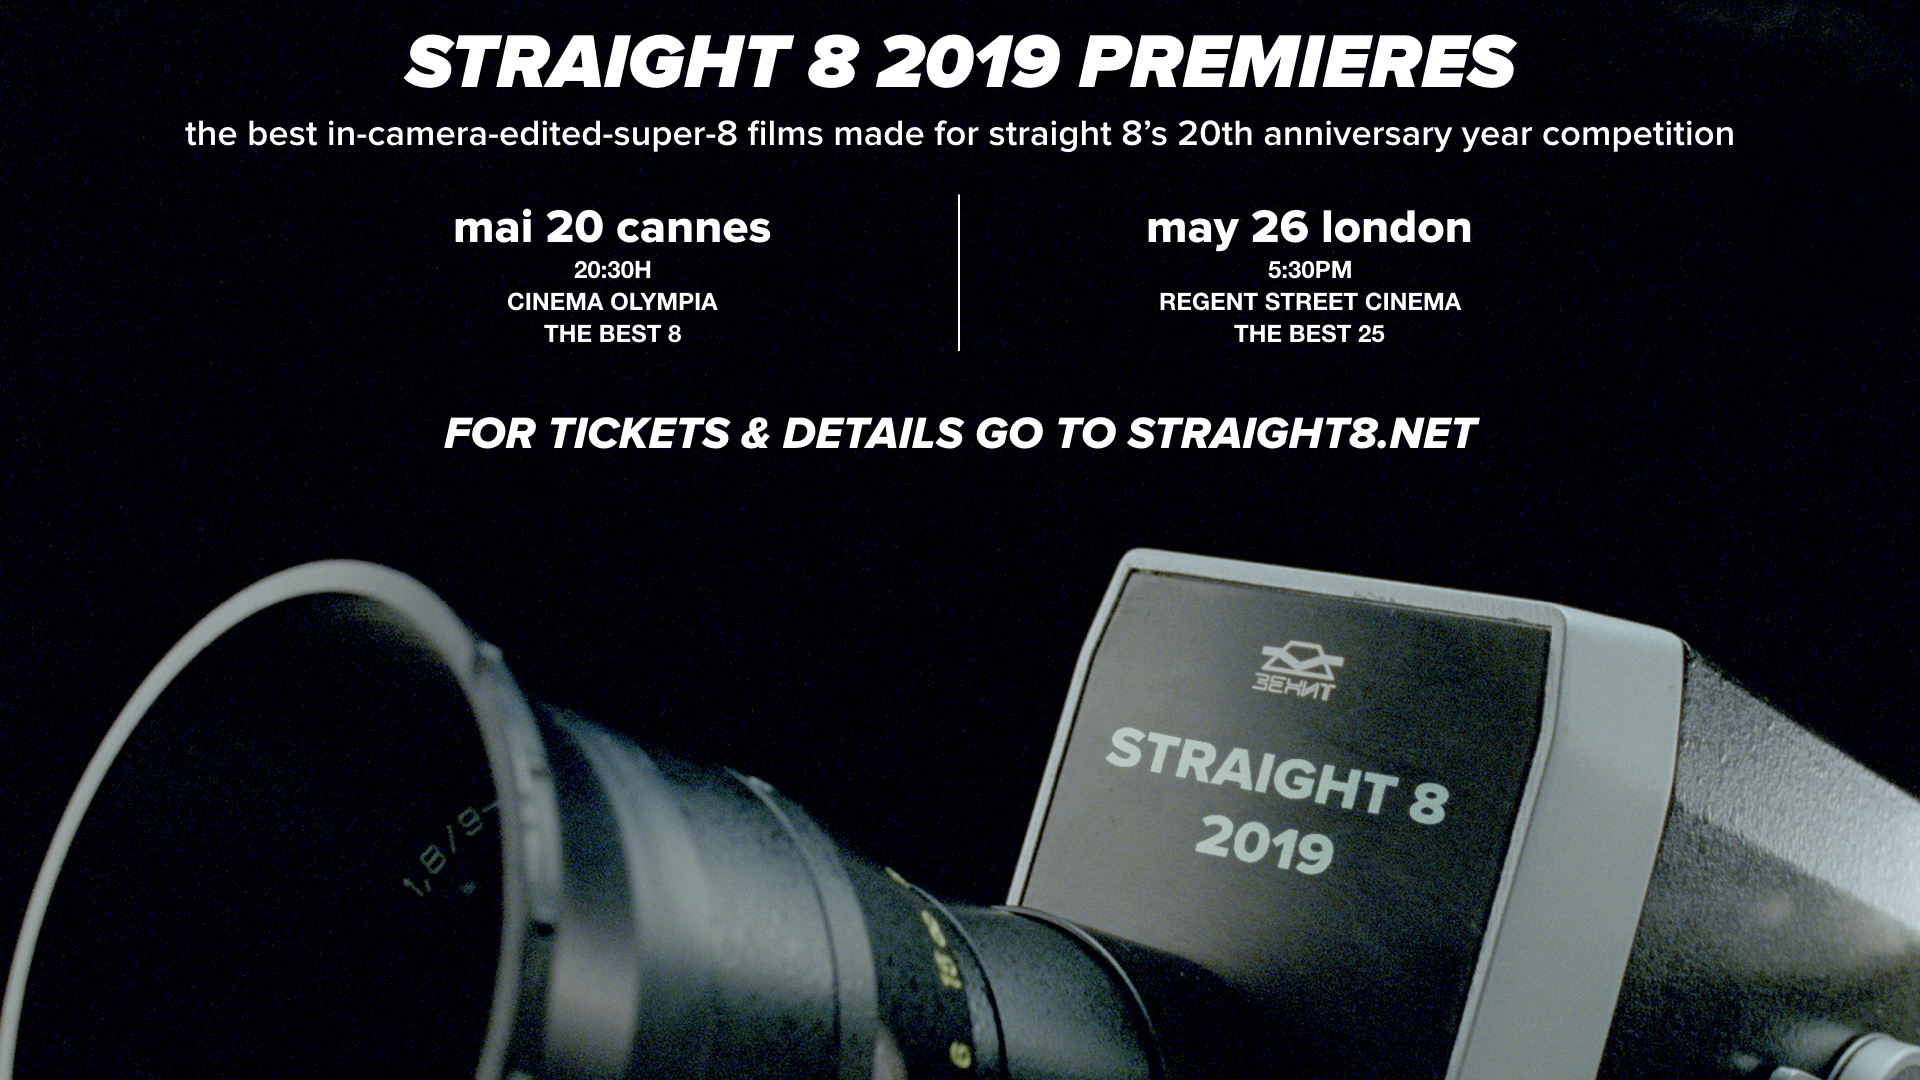 s8 2019 event images cannes:london.001.jpeg